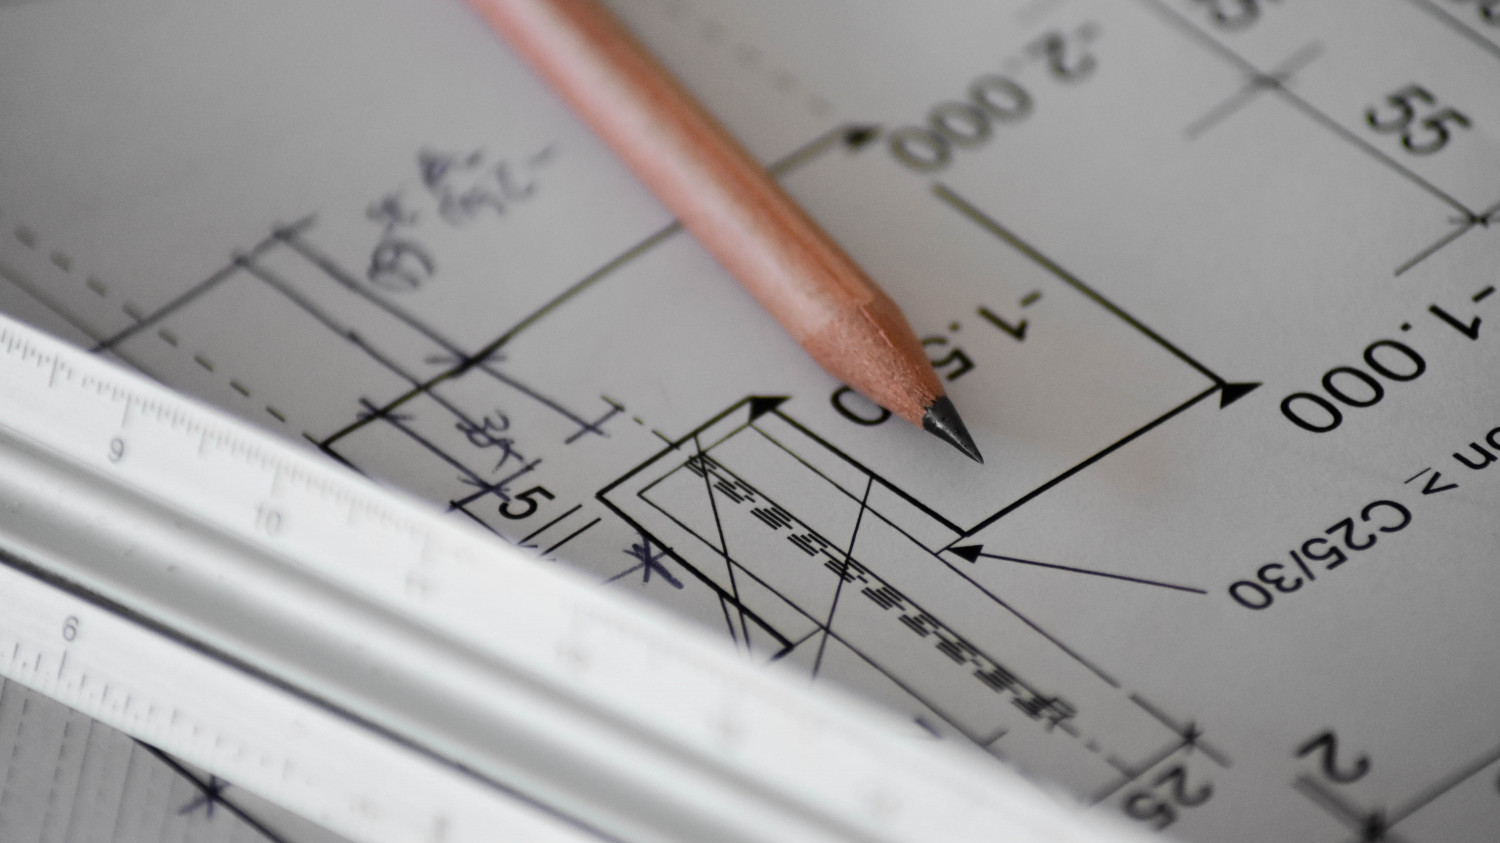 Image of architectural drawings on a desk